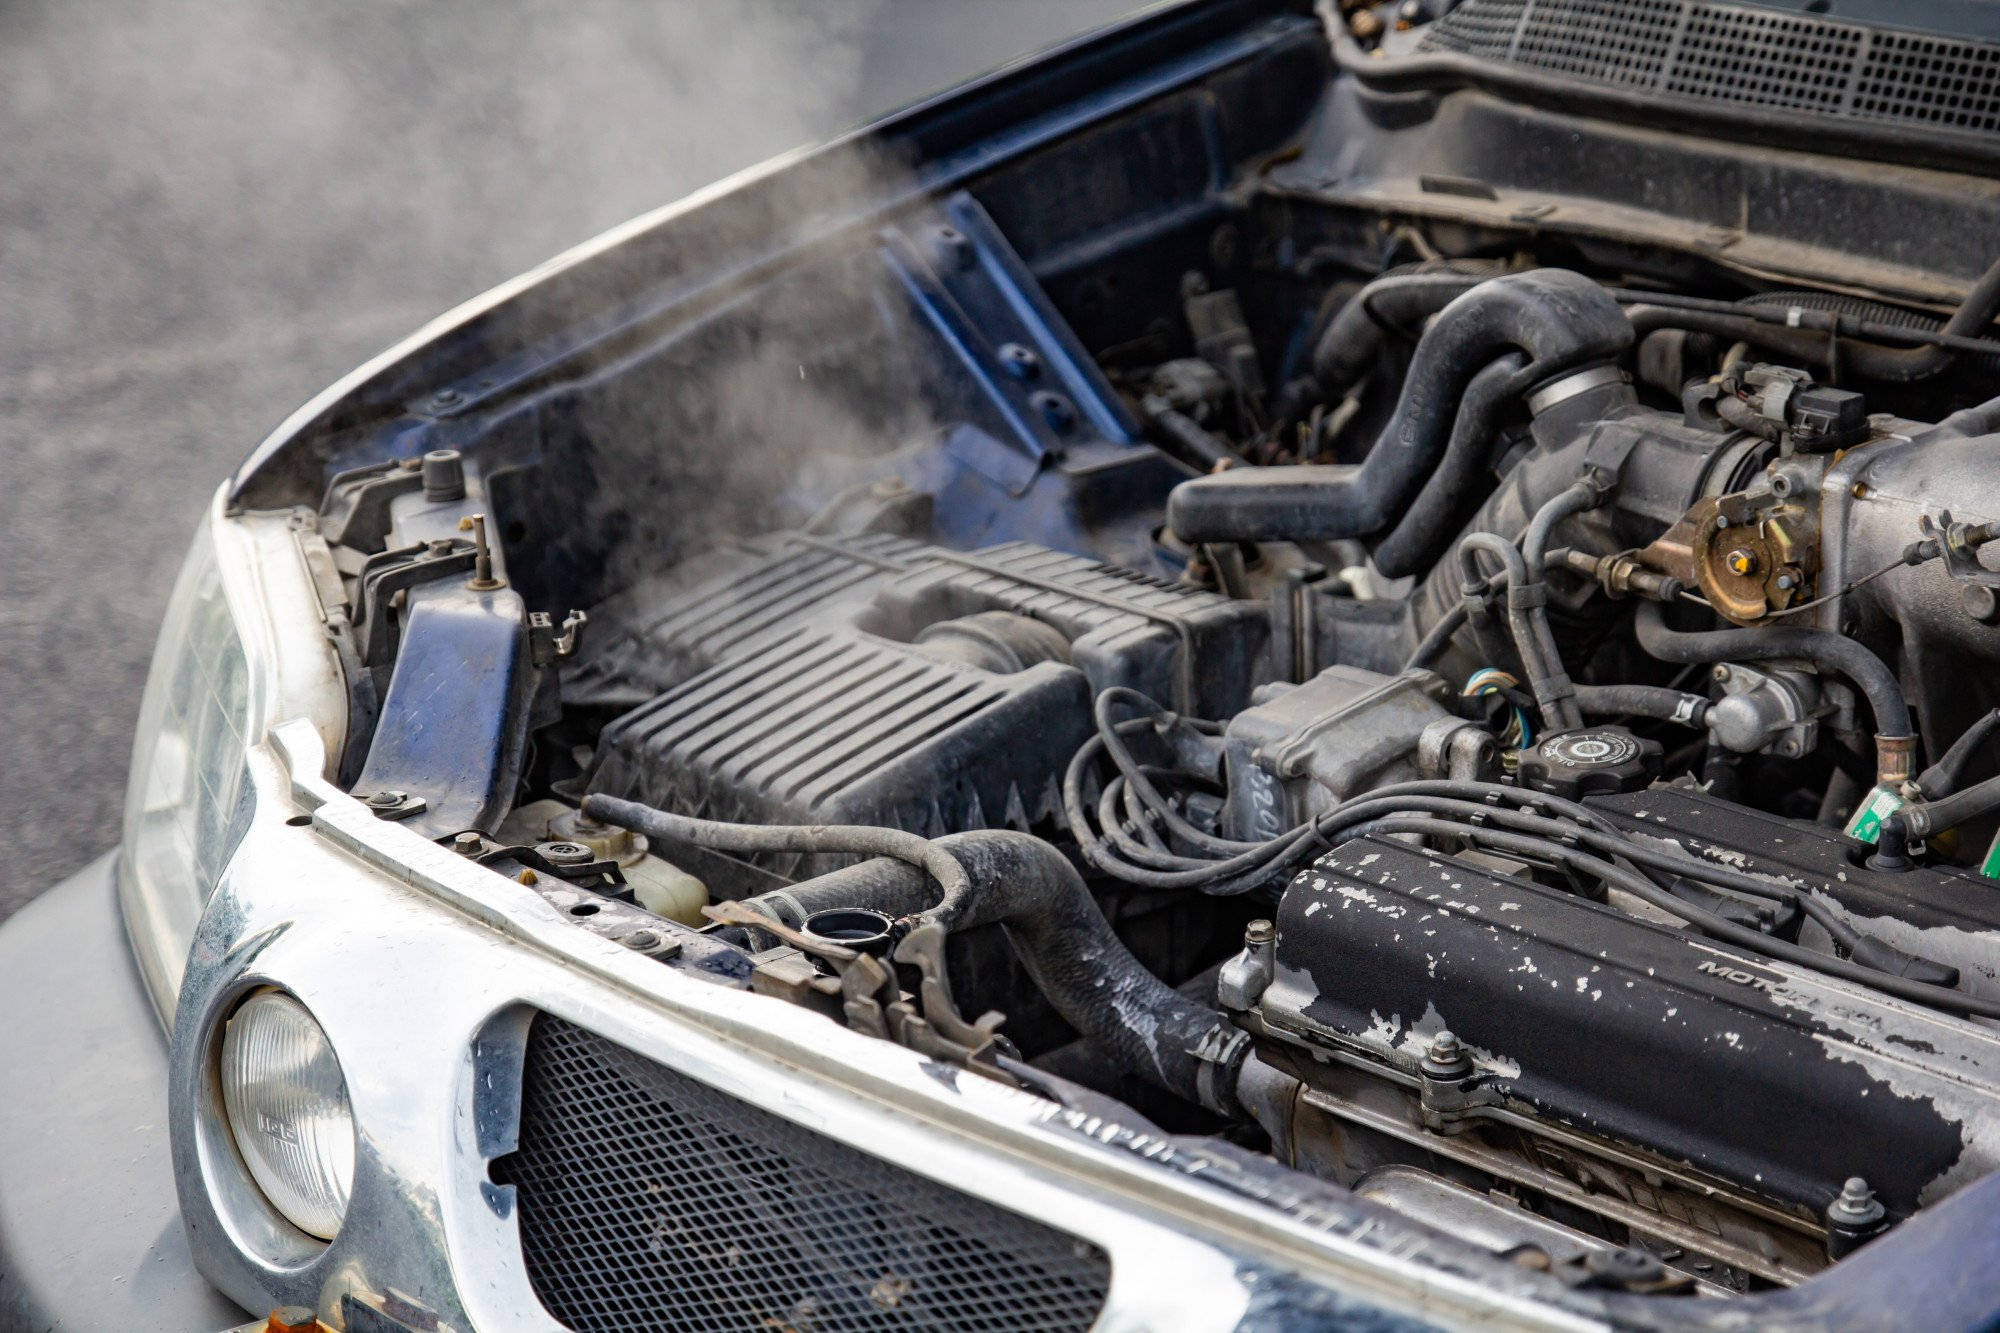 How Do I Prevent Carbon Buildup in My Engine?